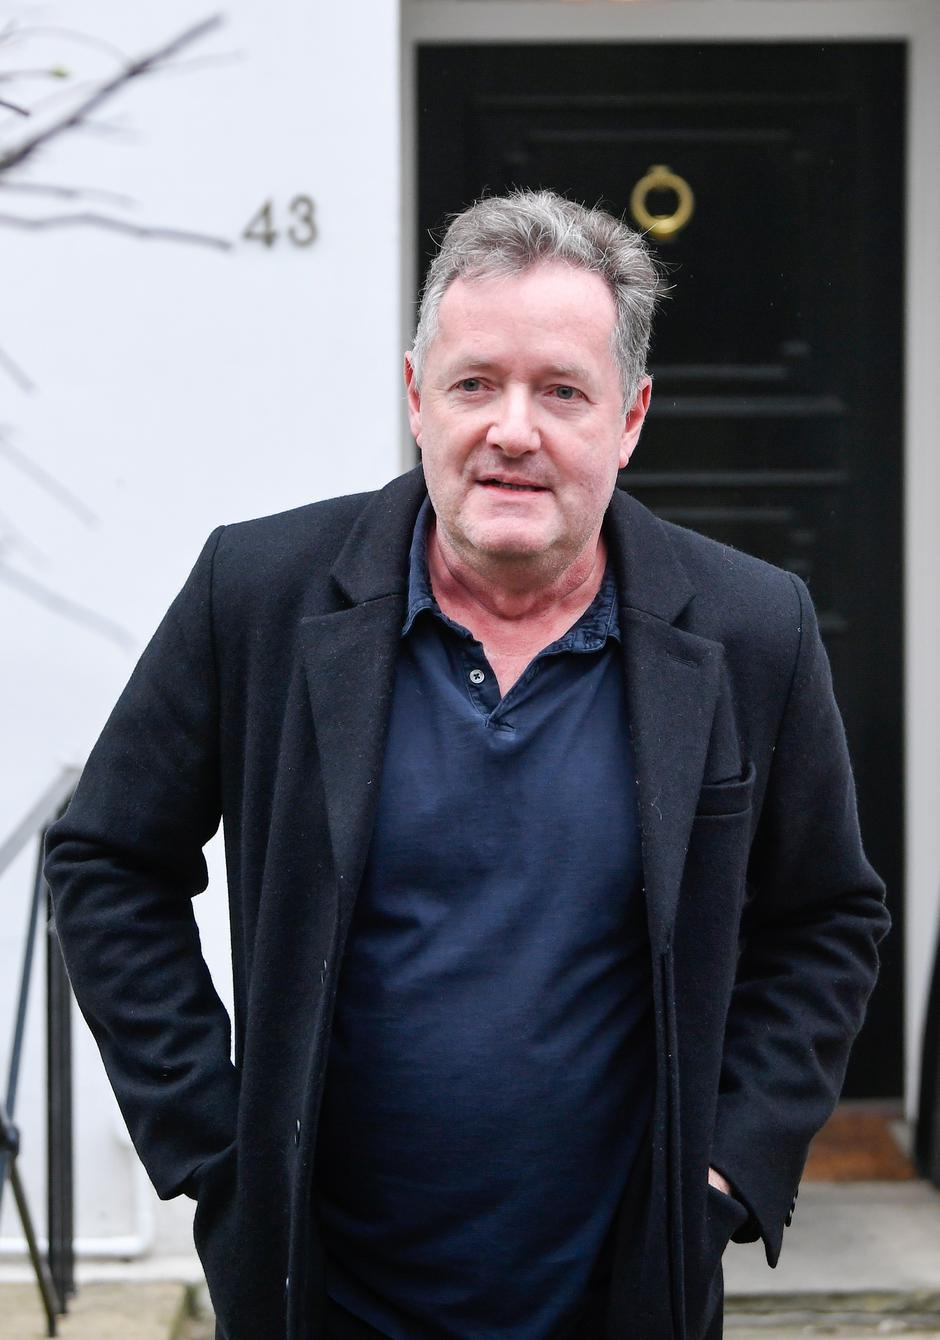 Piers Morgan walks near his house in London | Autor : Toby Melville/REUTERS/PIXSELL/REUTERS/PIXSELL